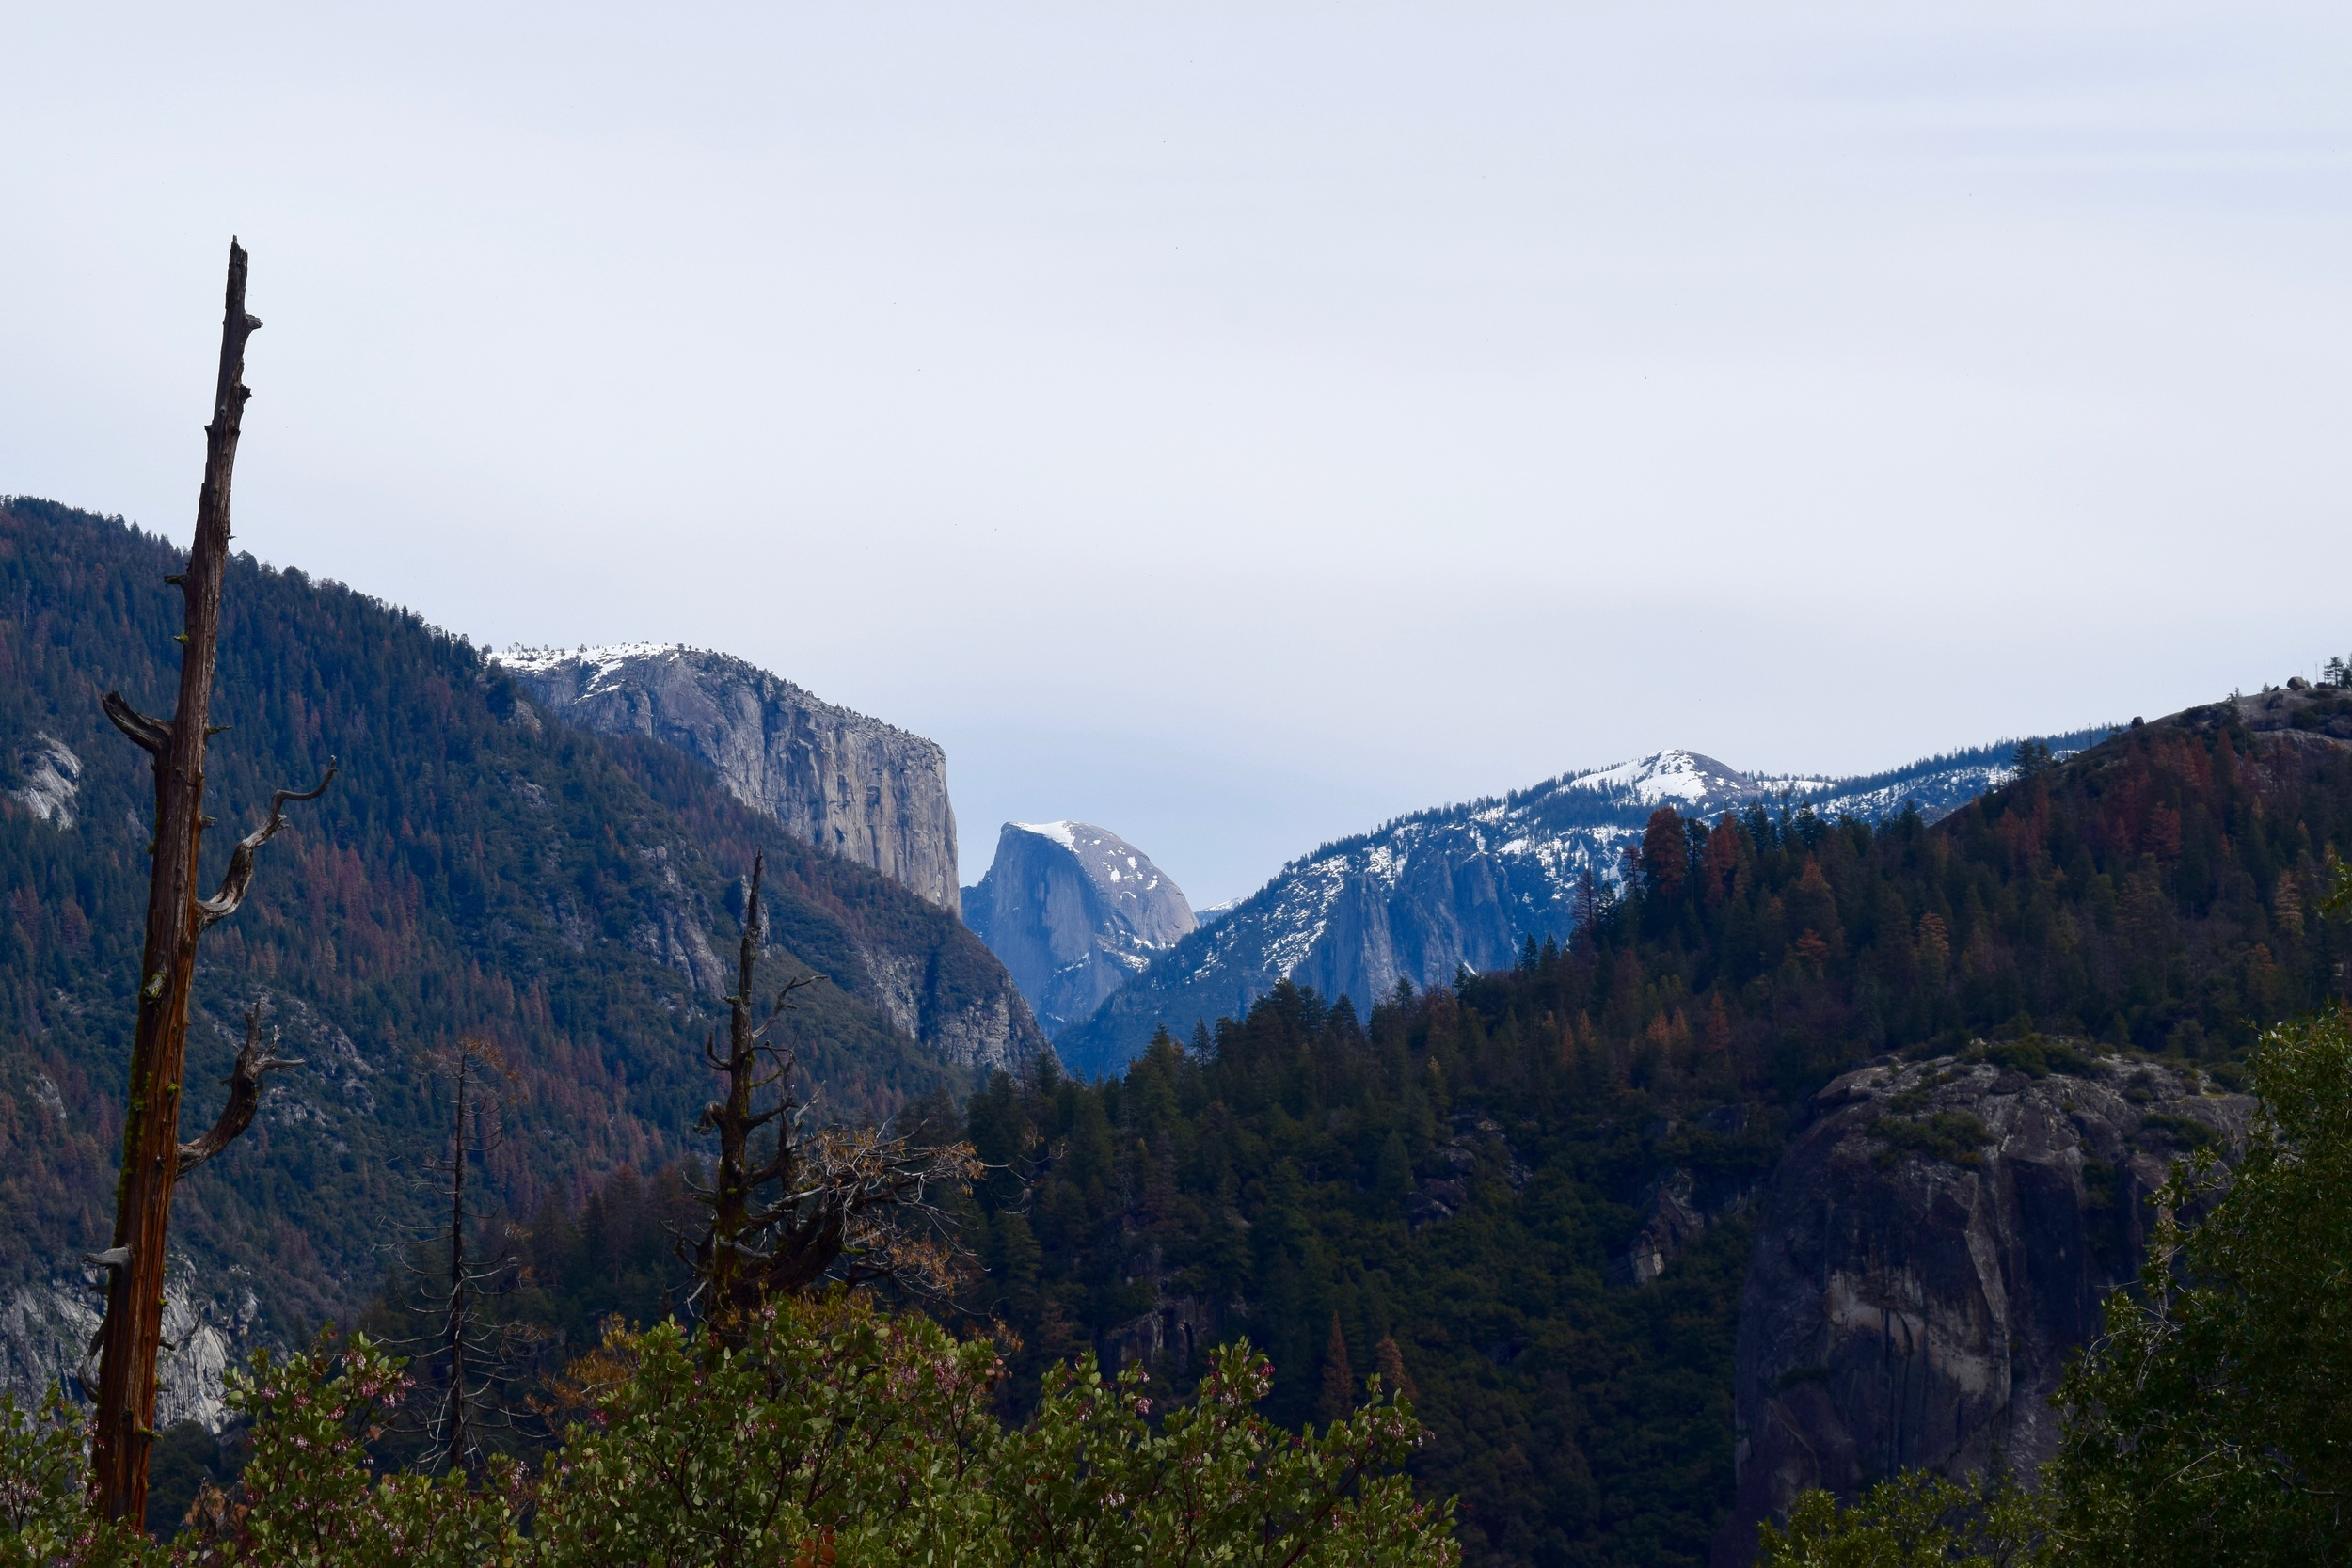 Our first glimpse of Half Dome! (this isn't tunnel view, it was just on the road driving into the valley)